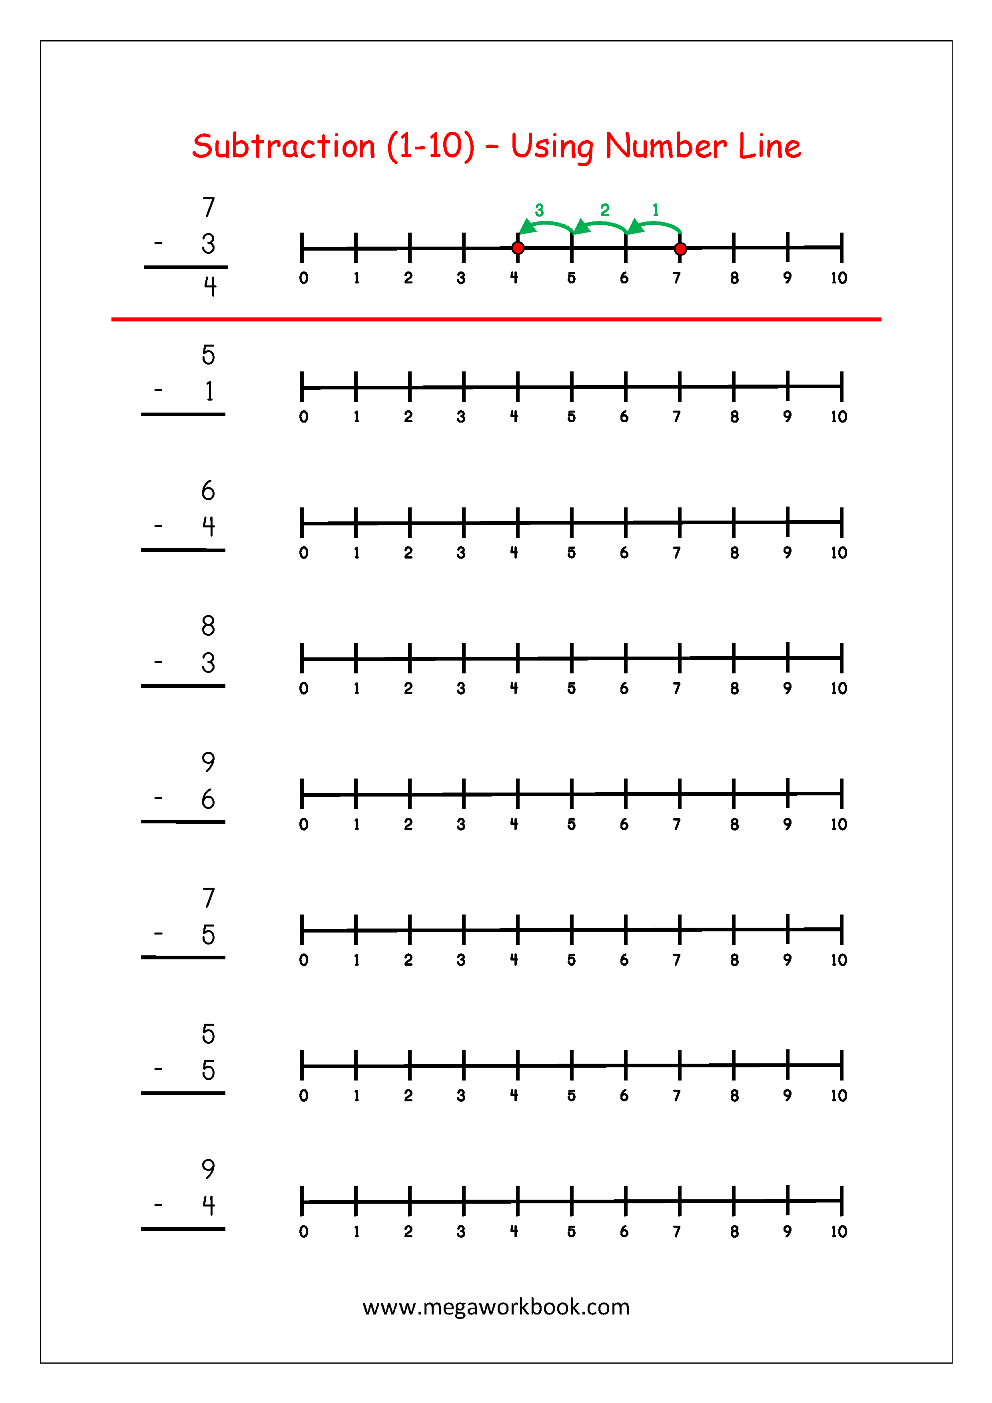 Free Printable Number Subtraction 1 10 Worksheets For